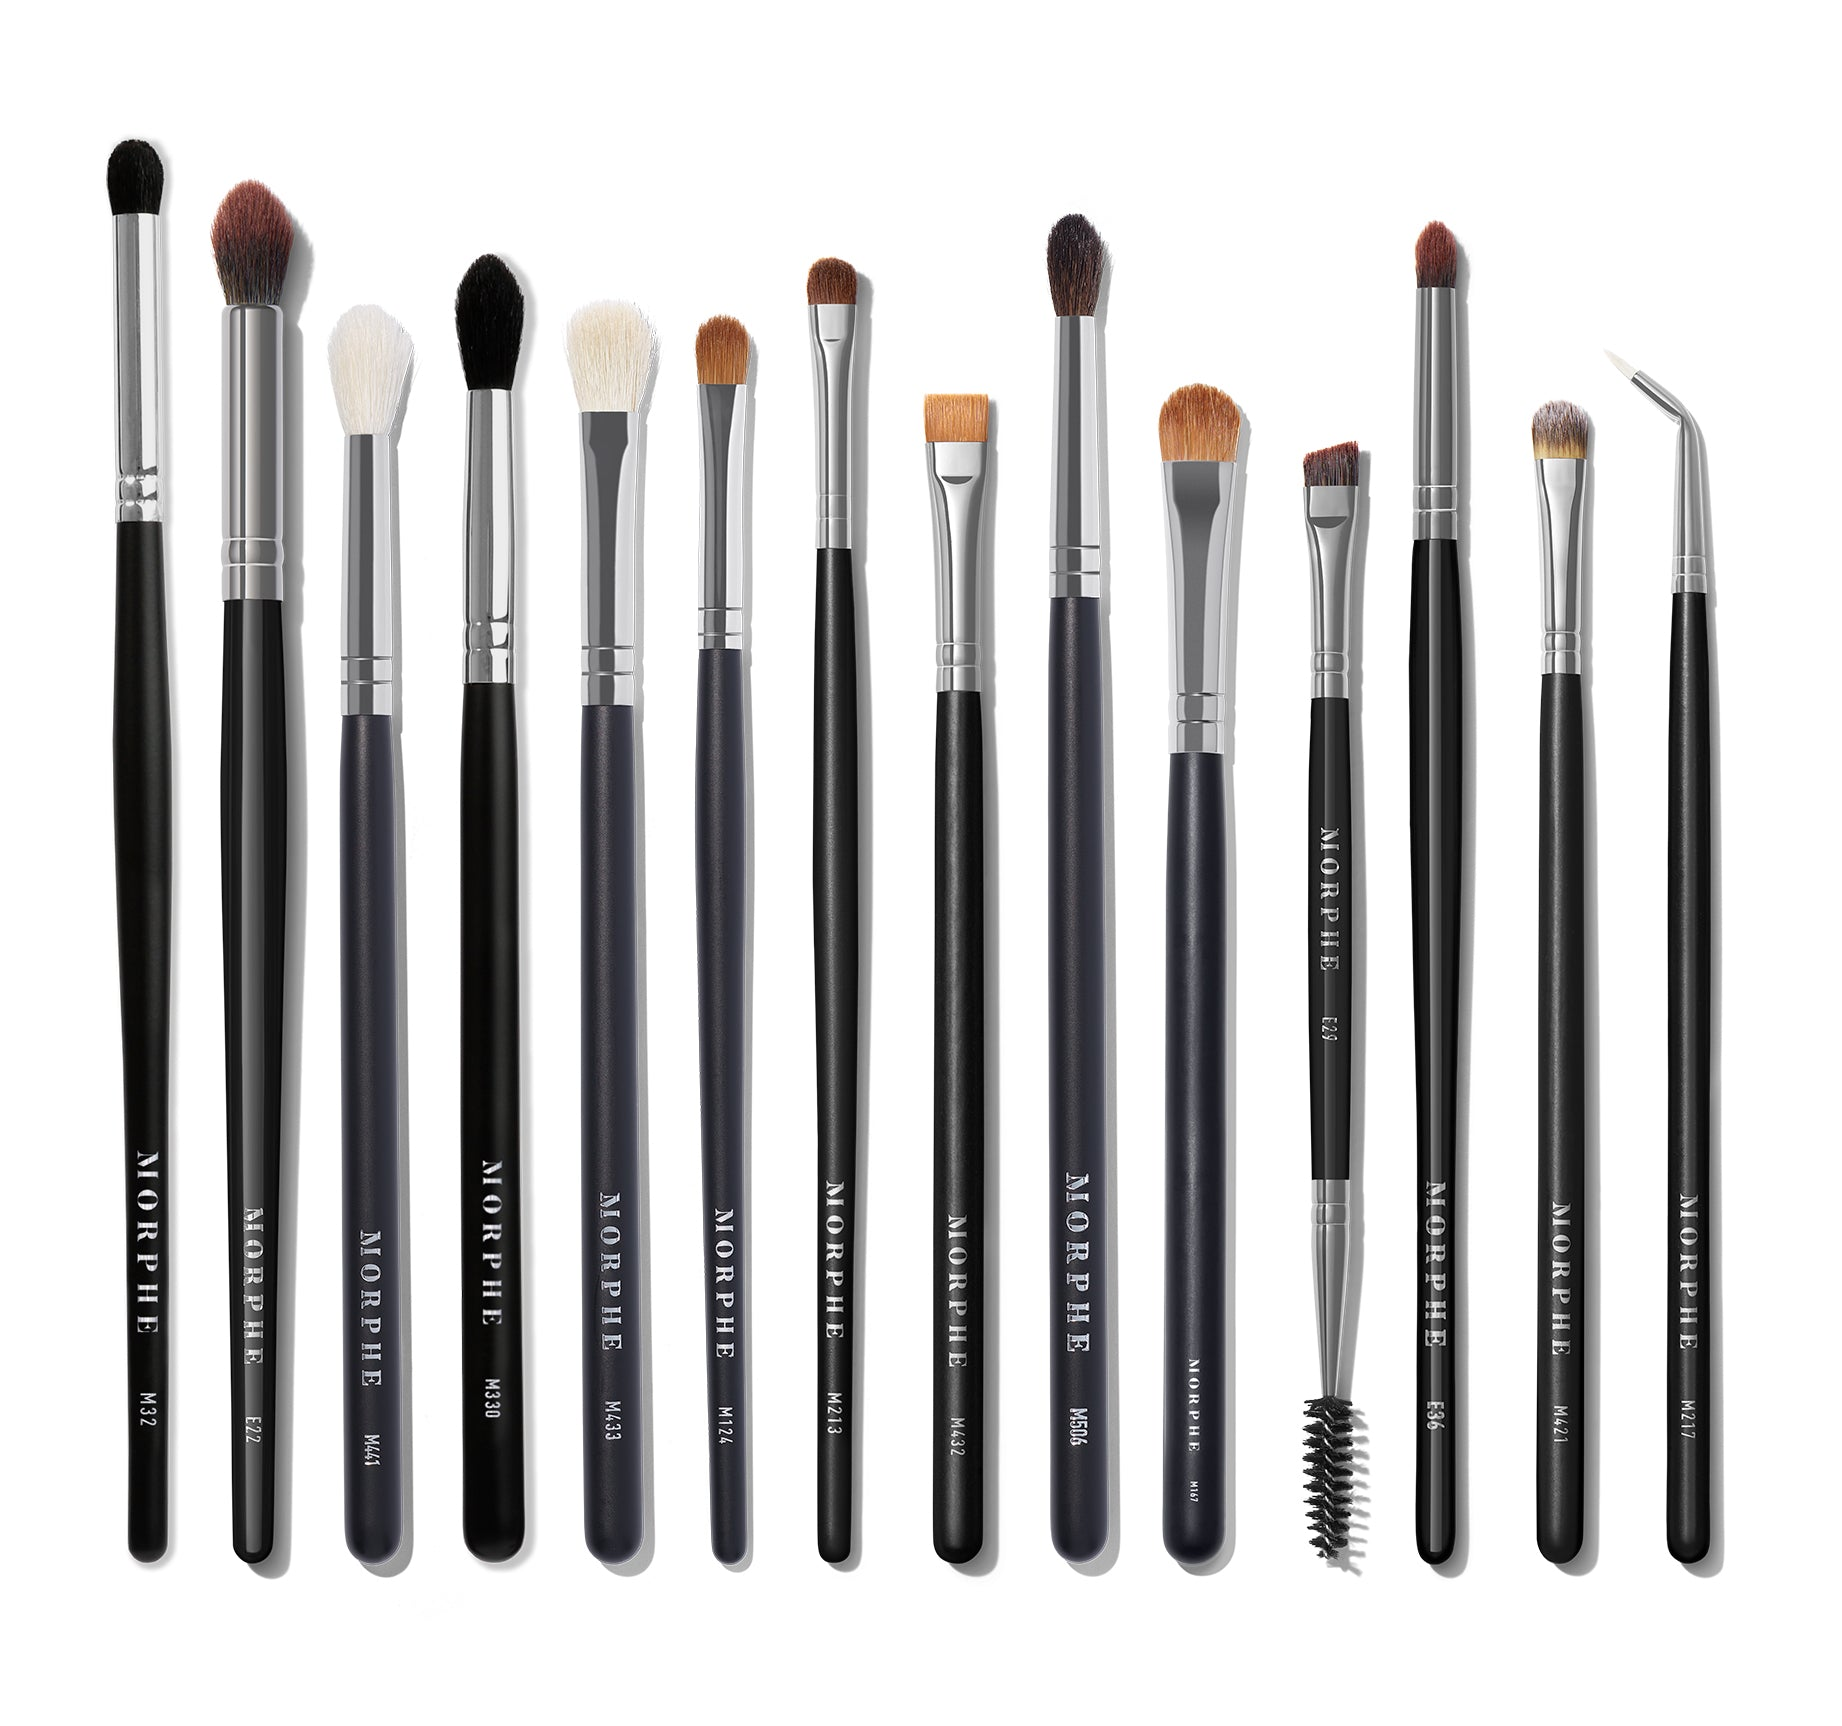 Babe Faves Eye Brush Set ✅ browse our daily deals for even more savings! babe faves eye brush set